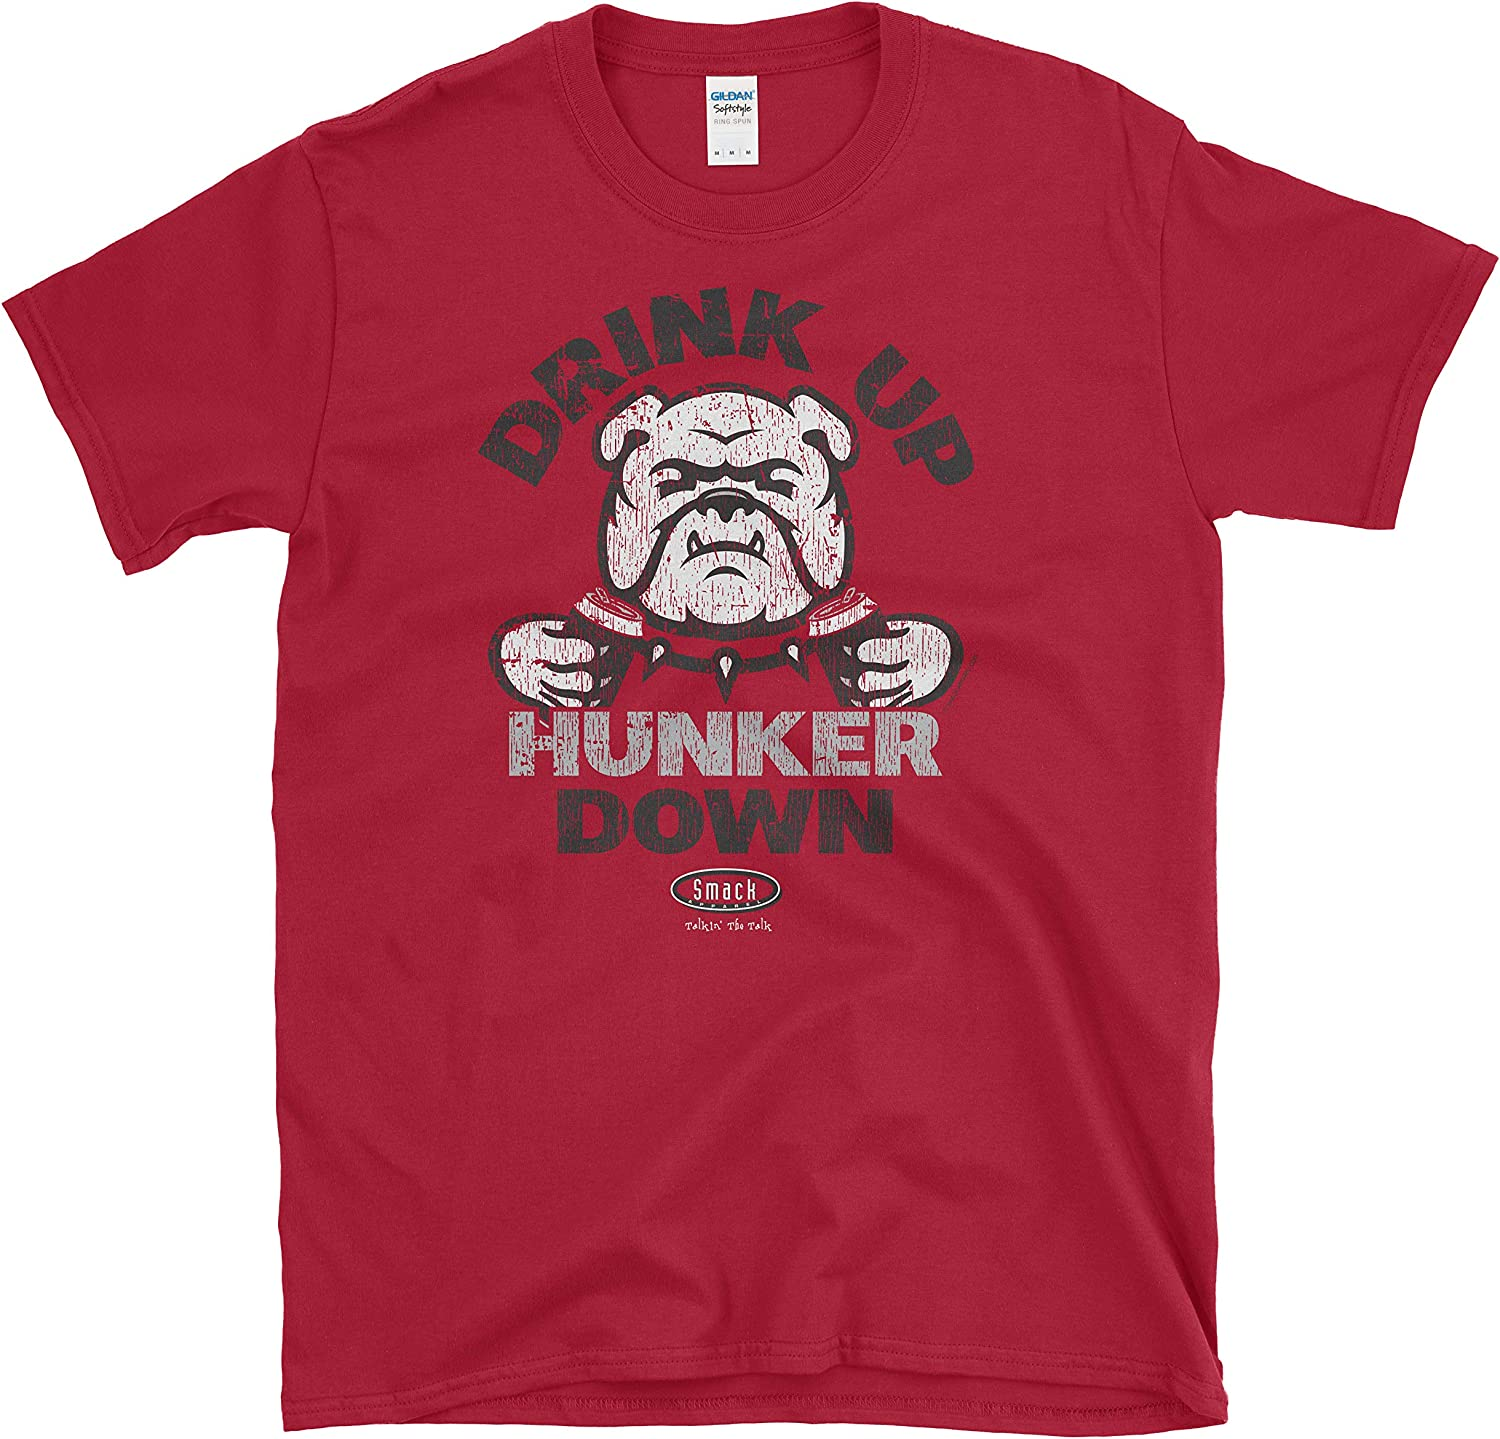 Popular products Smack Apparel Georgia Football Fans. Drink Up Red Easy-to-use Hunker Down. S